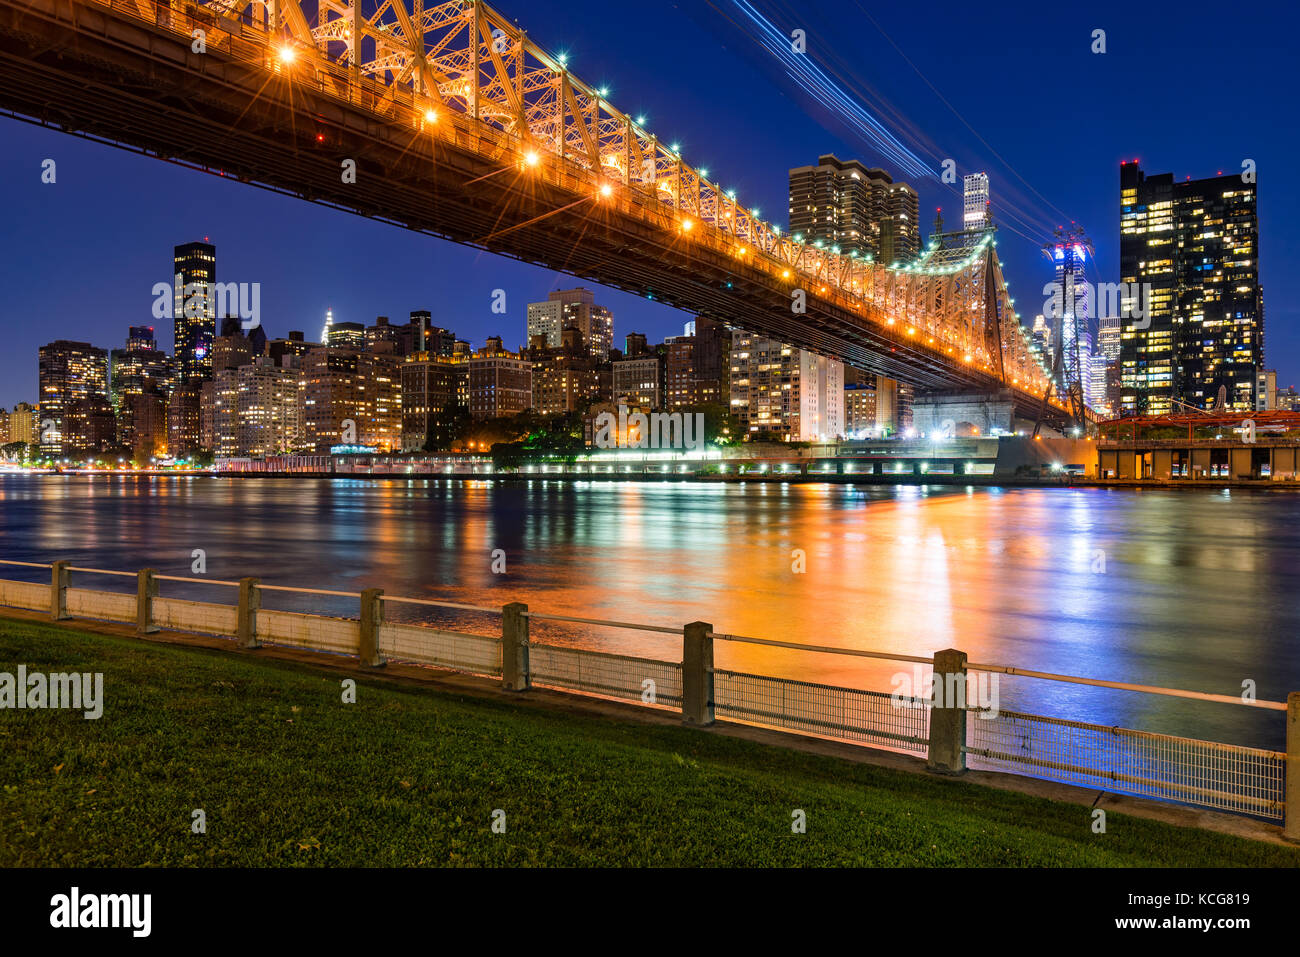 Evening view of Manhattan Midtown East from Roosevelt Island with the Queensboro Bridge. New York City - Stock Image